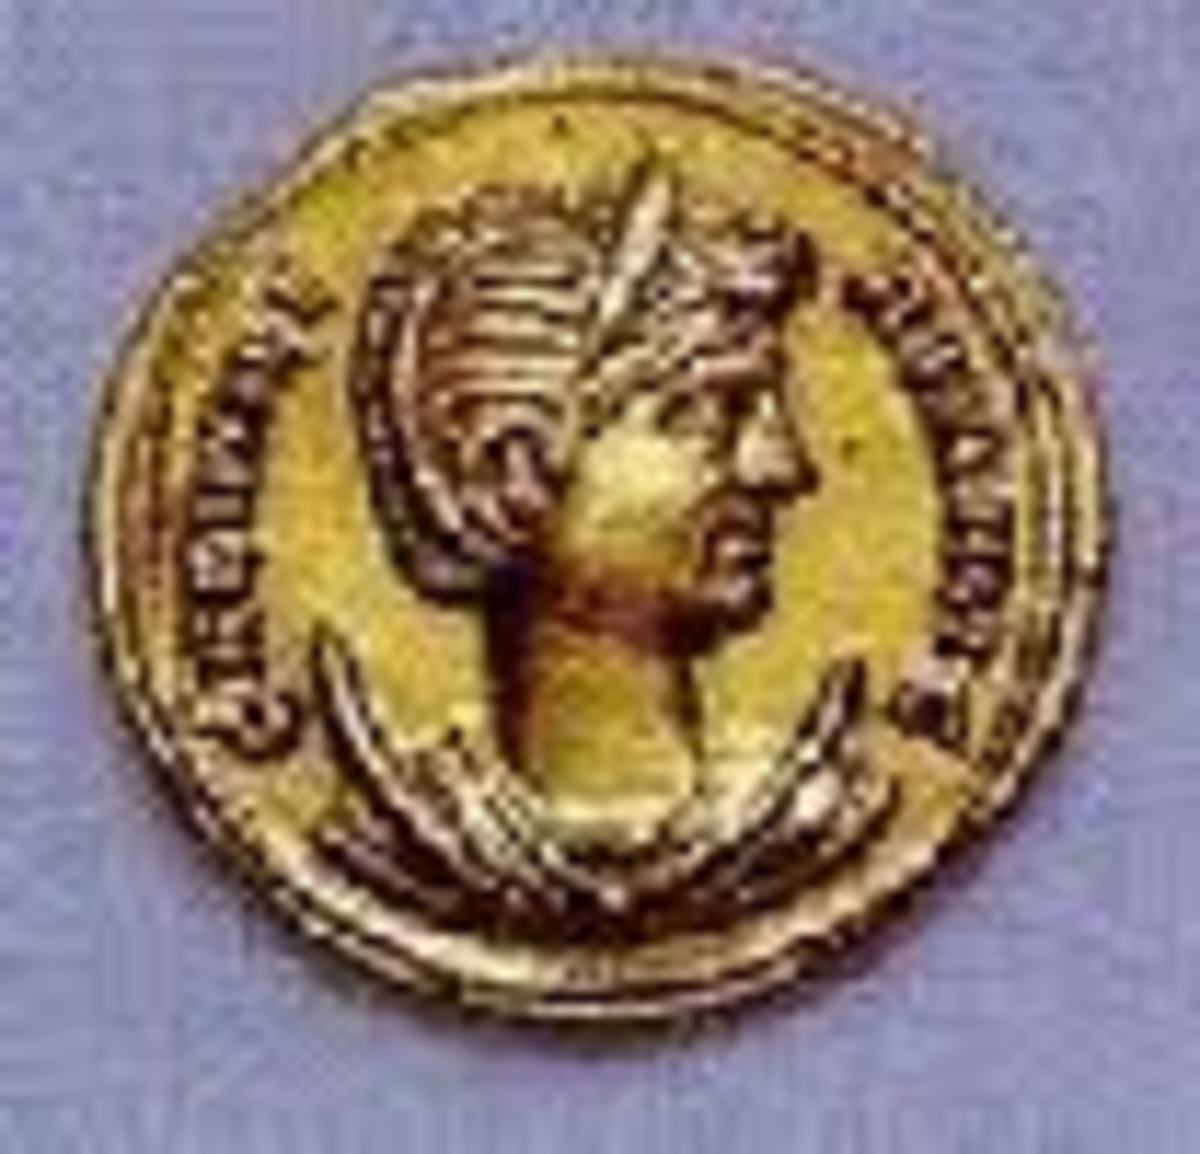 The Diocletian's wife and true love, Prisca as depicted on a golden coin.